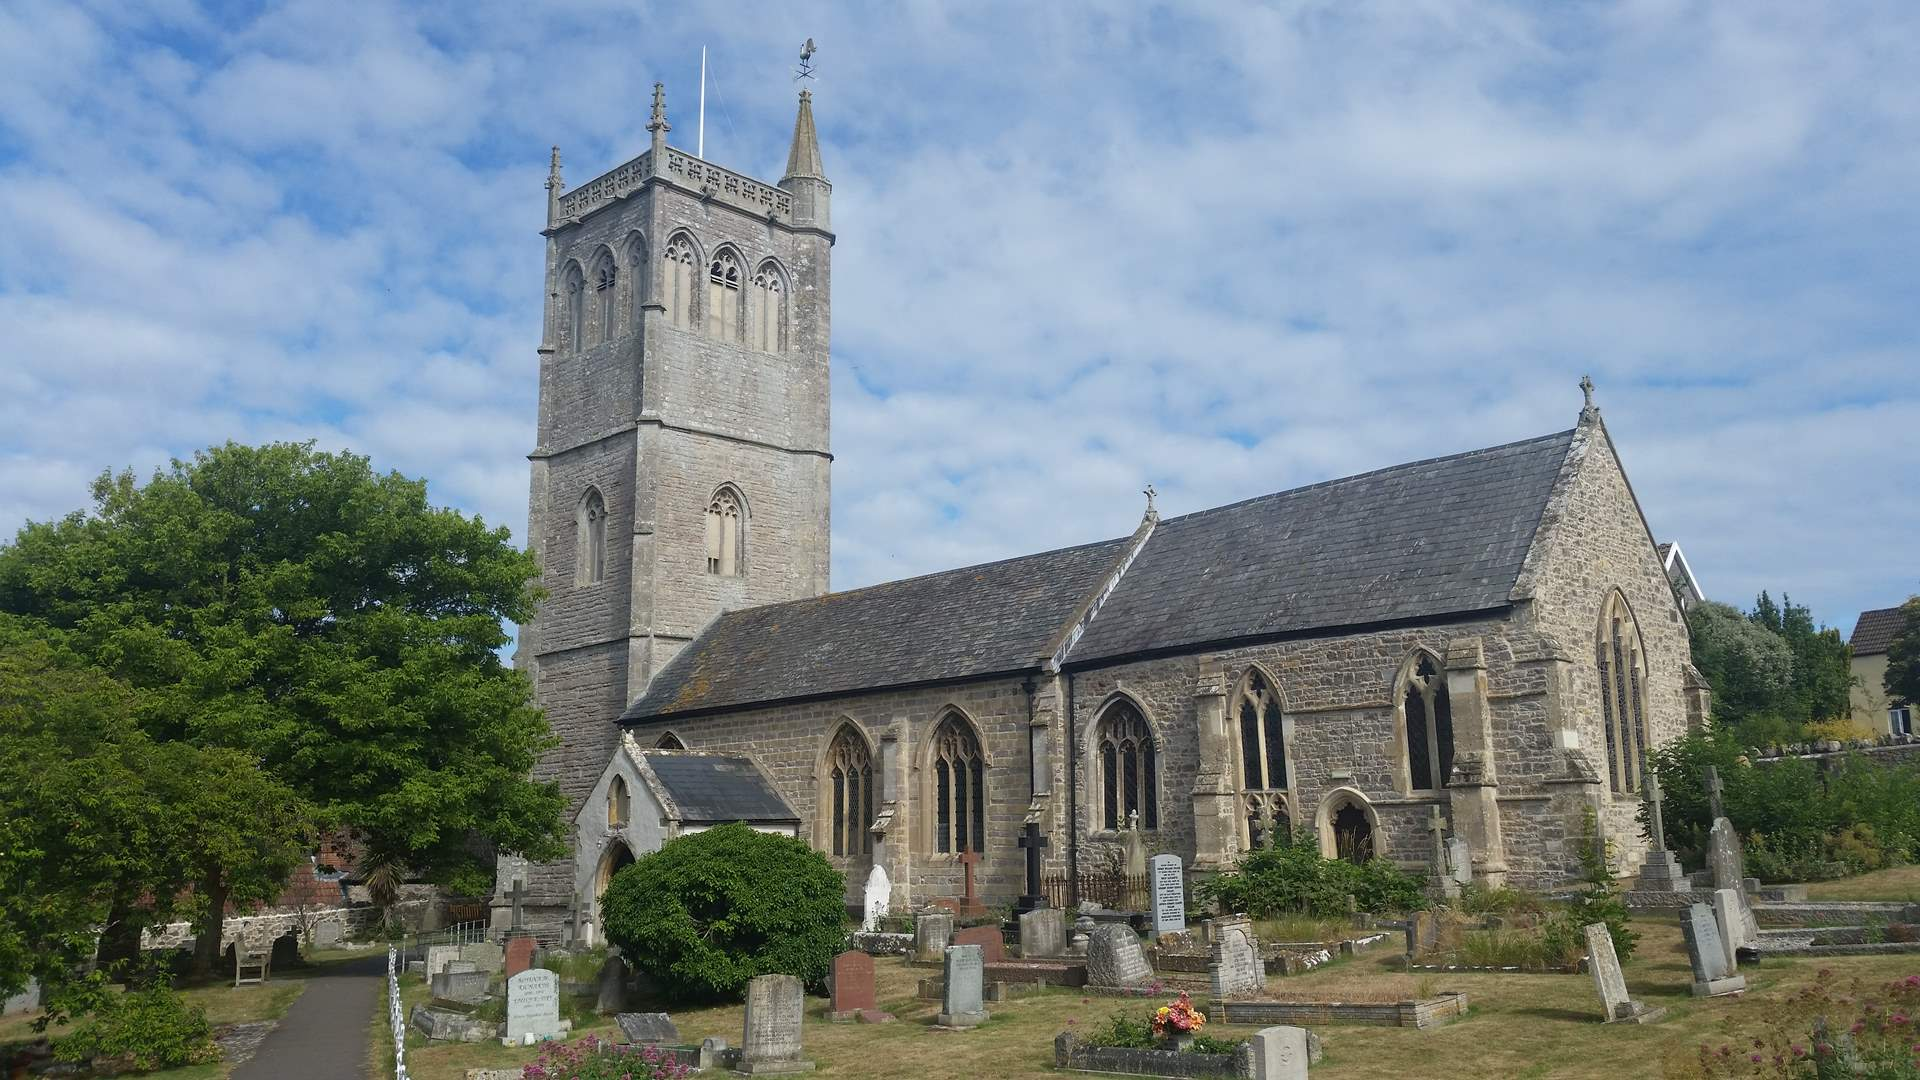 The Church of St Peter and Paul Bleadon